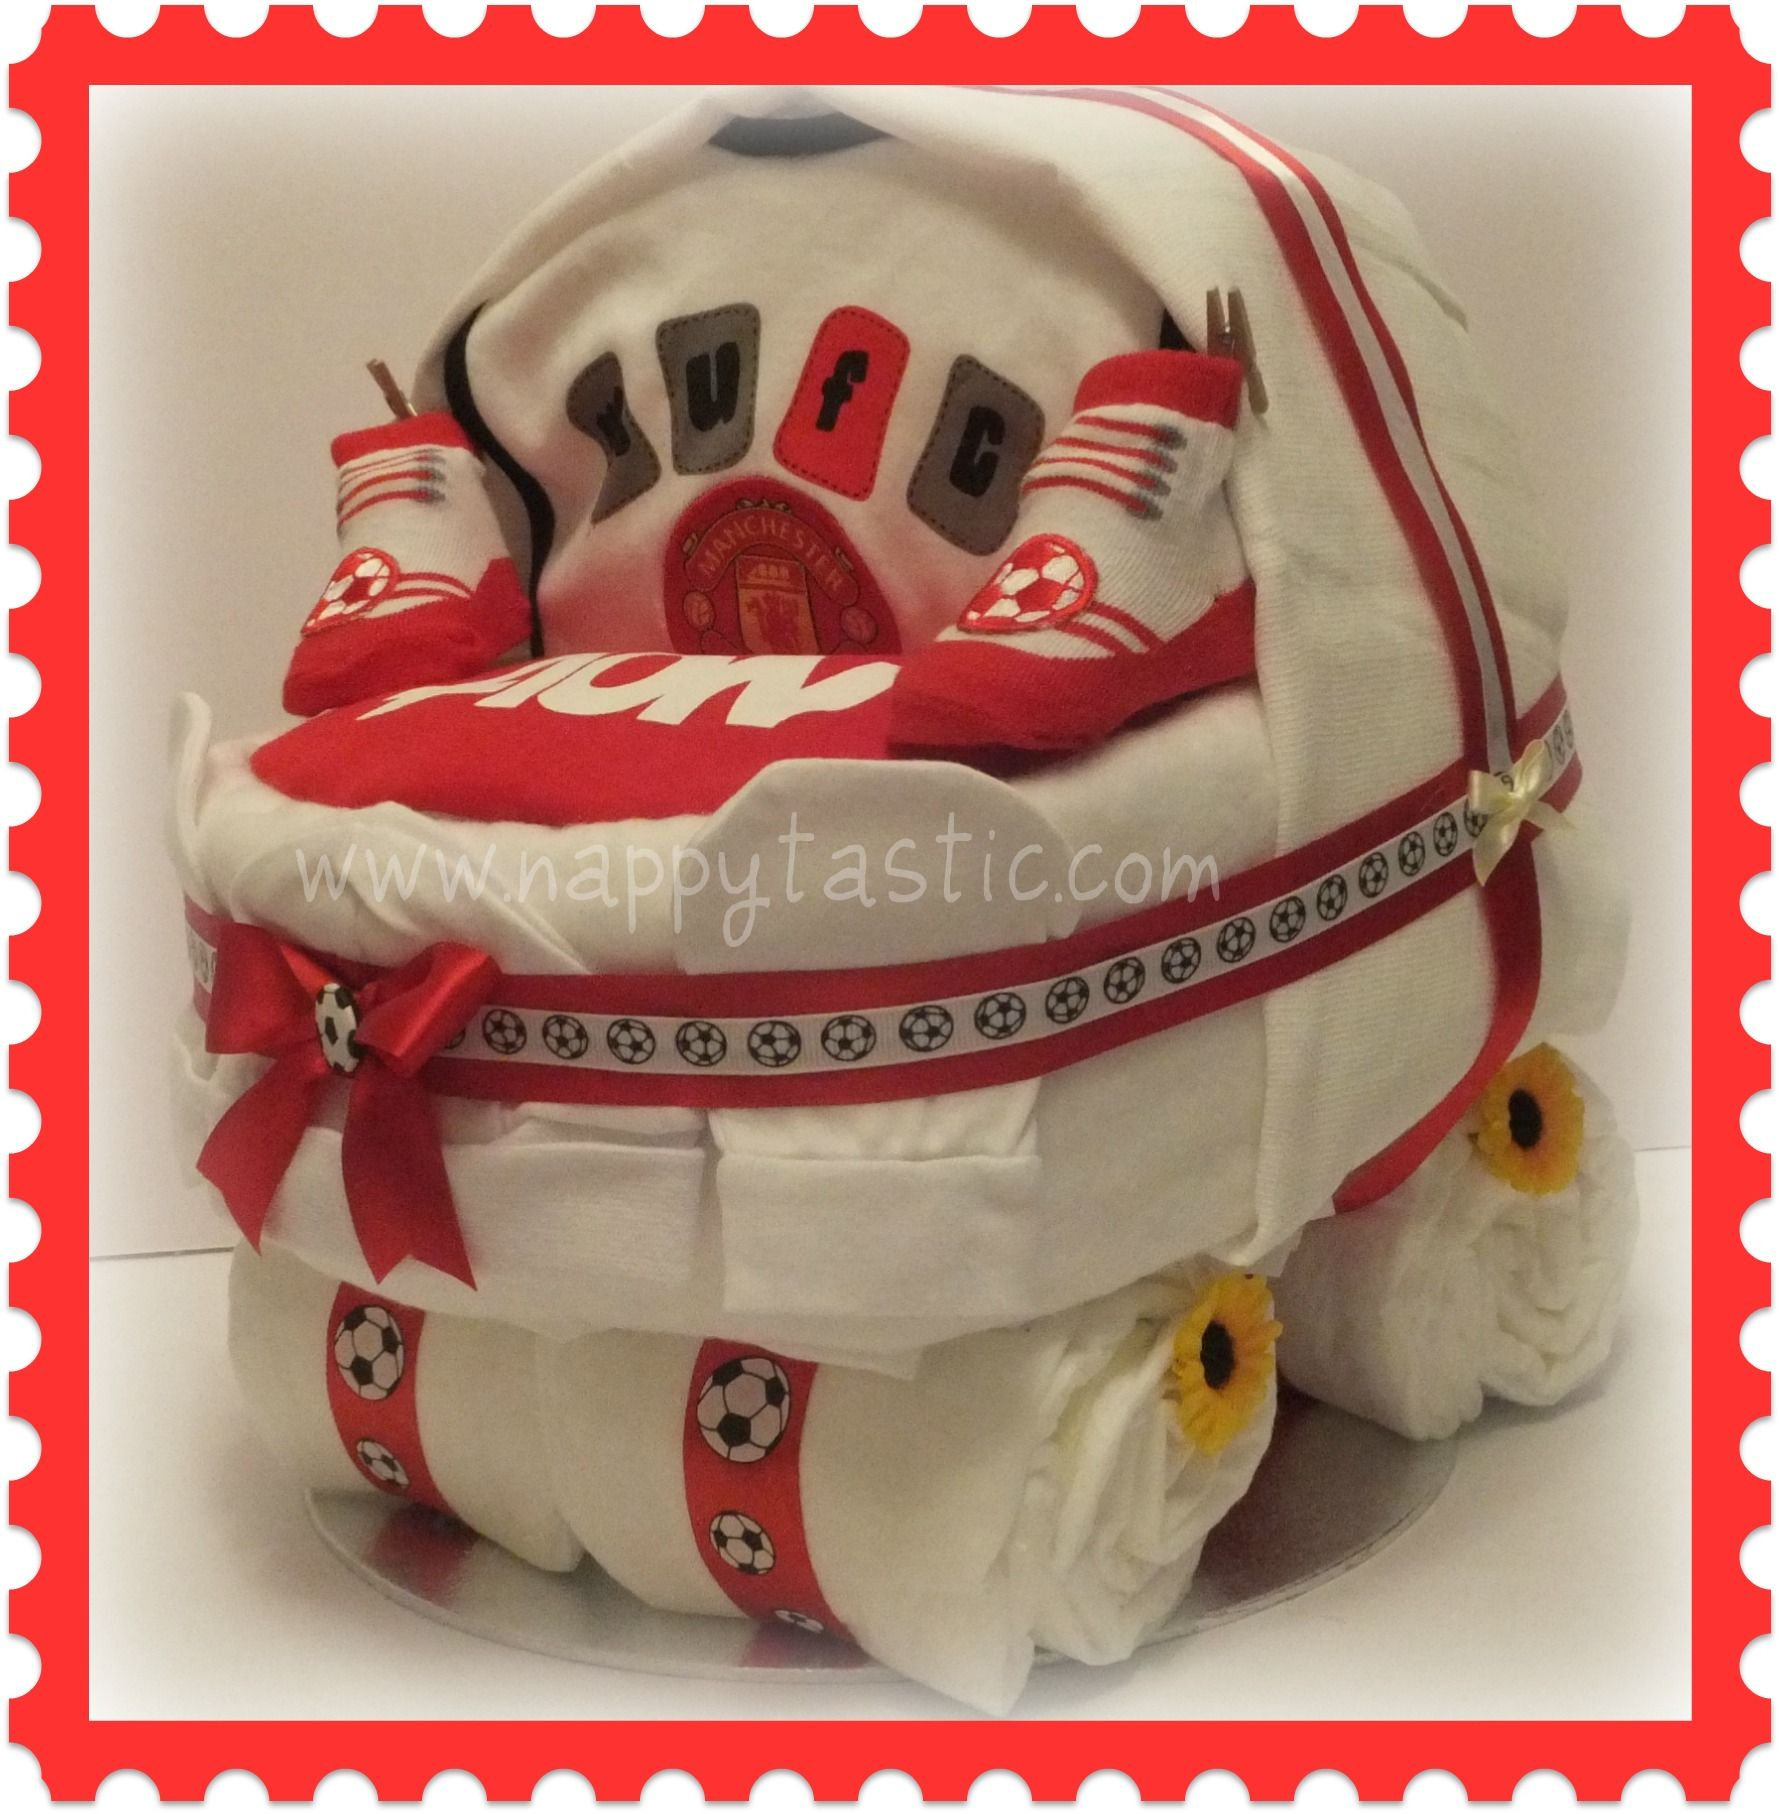 Baby Shower Decorations Manchester ~ Manchester united pram nappy cake there has been a hugh